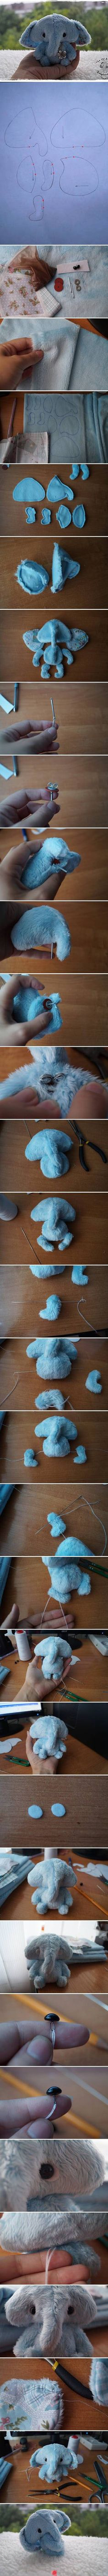 DIY Stuffed Animal - ELEPHANT - easy handmade sewing craft idea. Possible carnival prize to make over the winter?